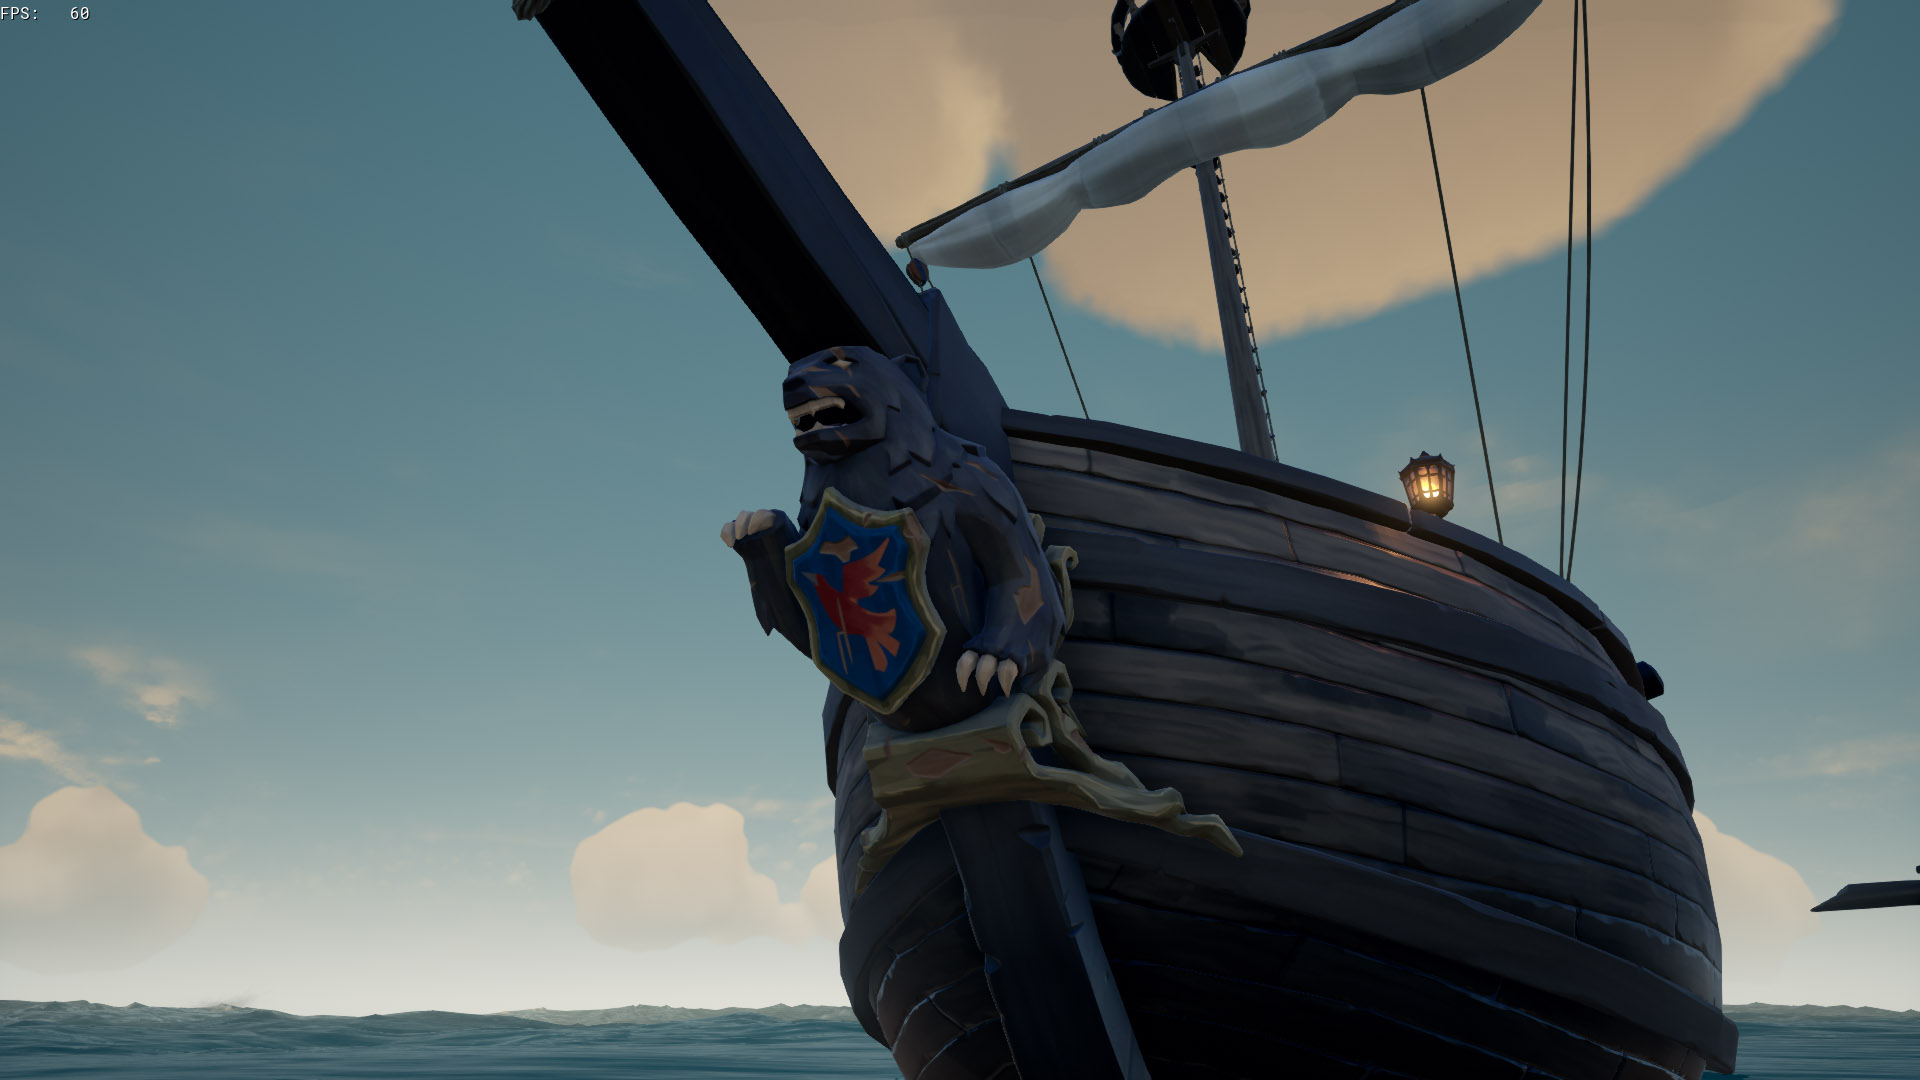 How to Get the Banjo-Kazooie Figurehead in Sea of Thieves